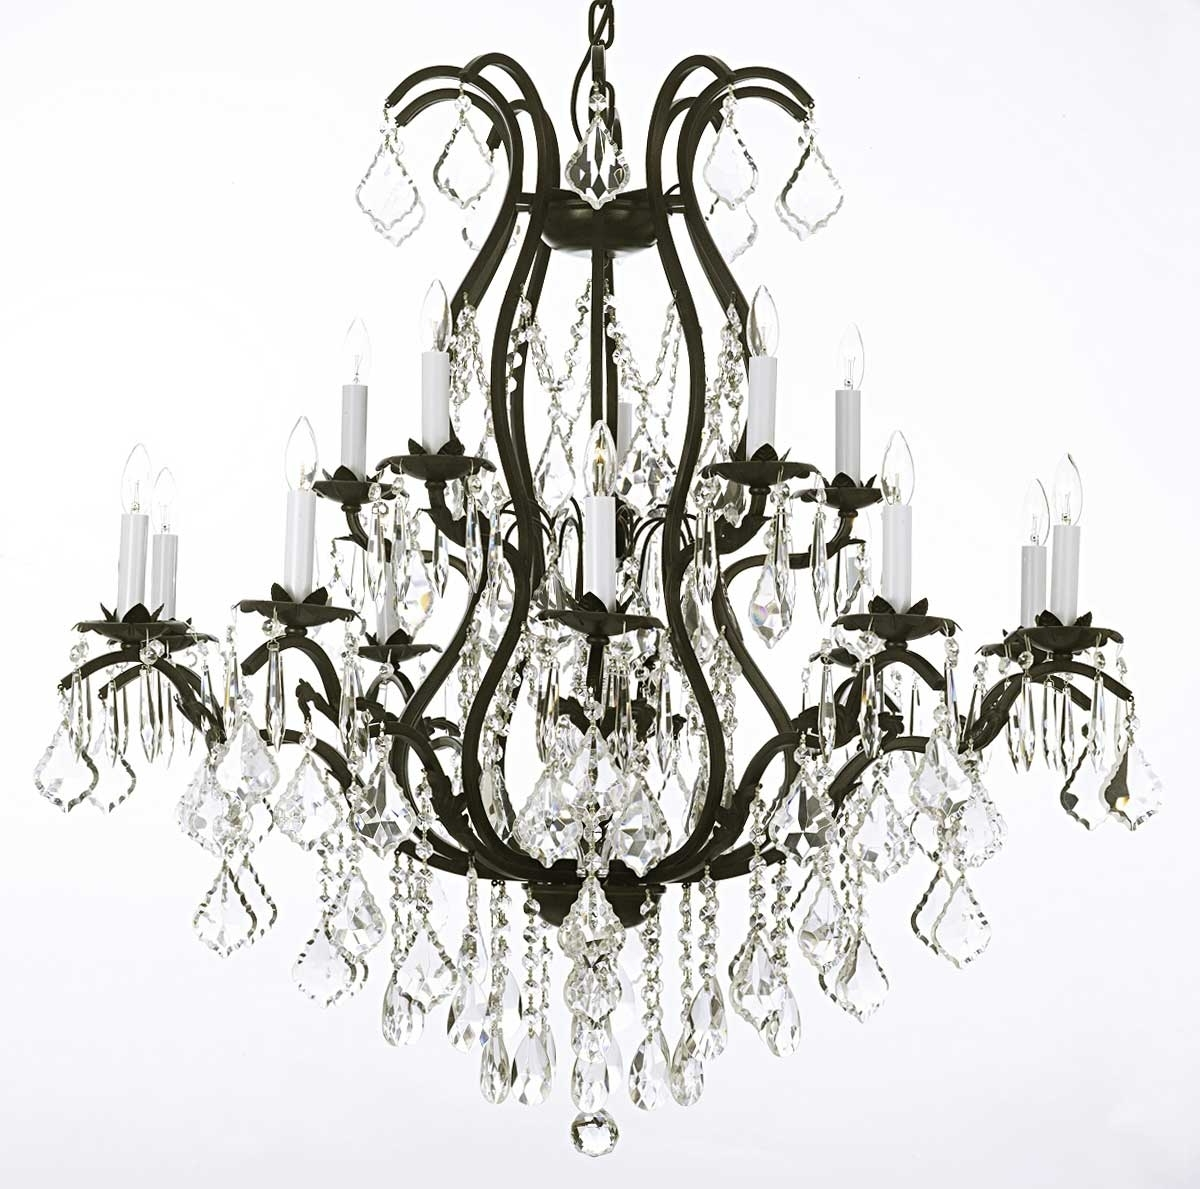 Most Popular Modern Wrought Iron Chandeliers Intended For Modern Black Wrought Iron And Crystal Chandeliers Plus Lamp Holder (View 10 of 15)